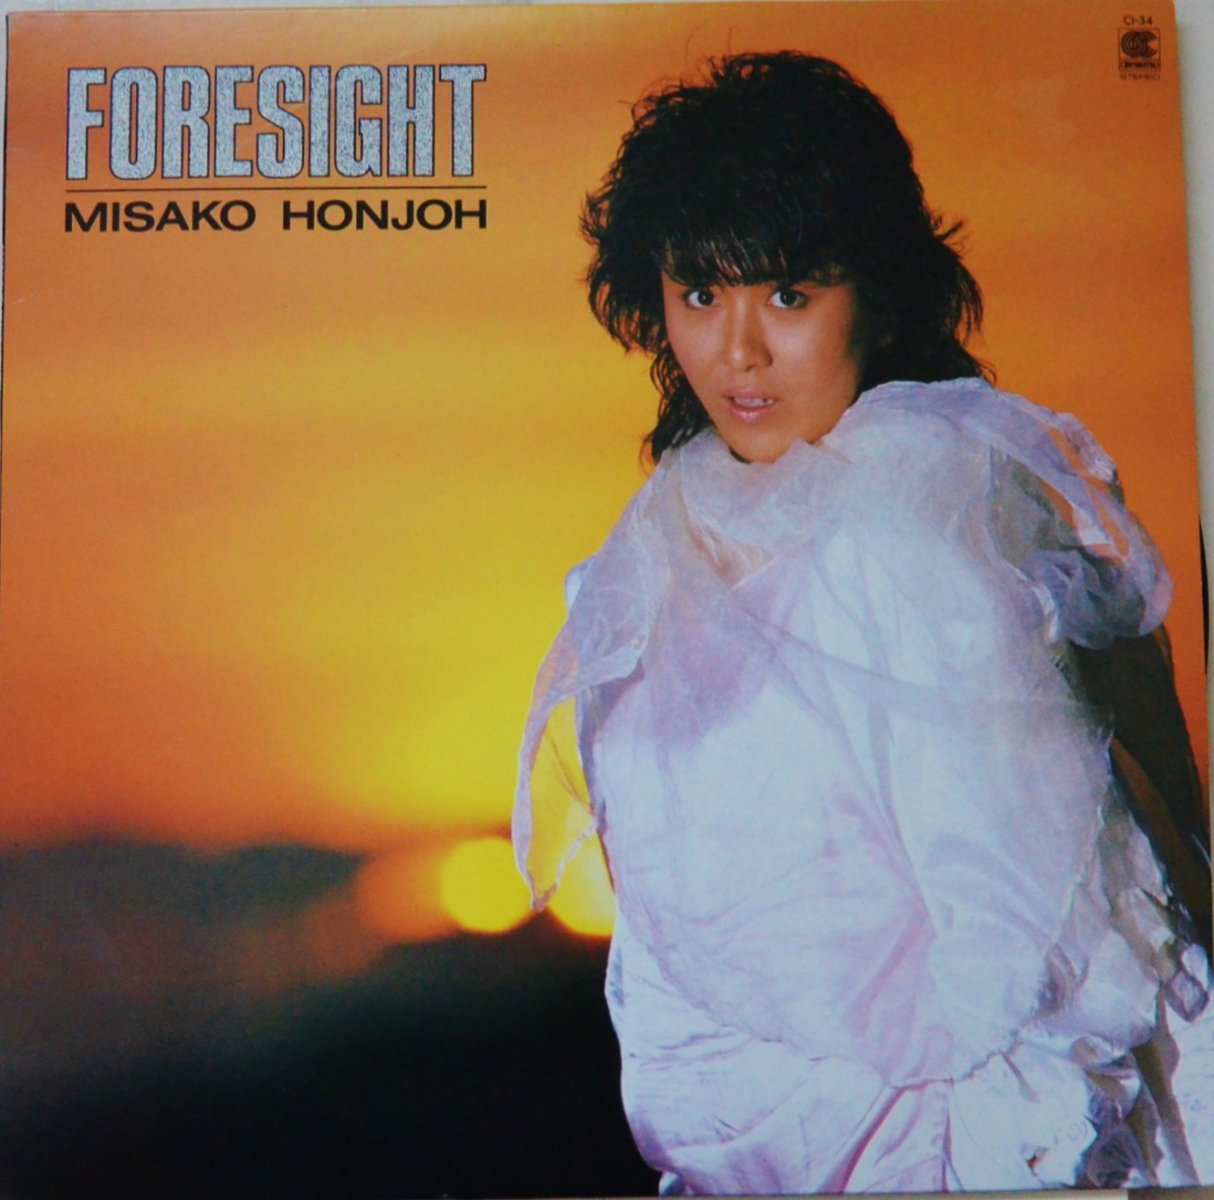 本城未沙子 MISAKO HONJOH / FORESIGHT (LP)